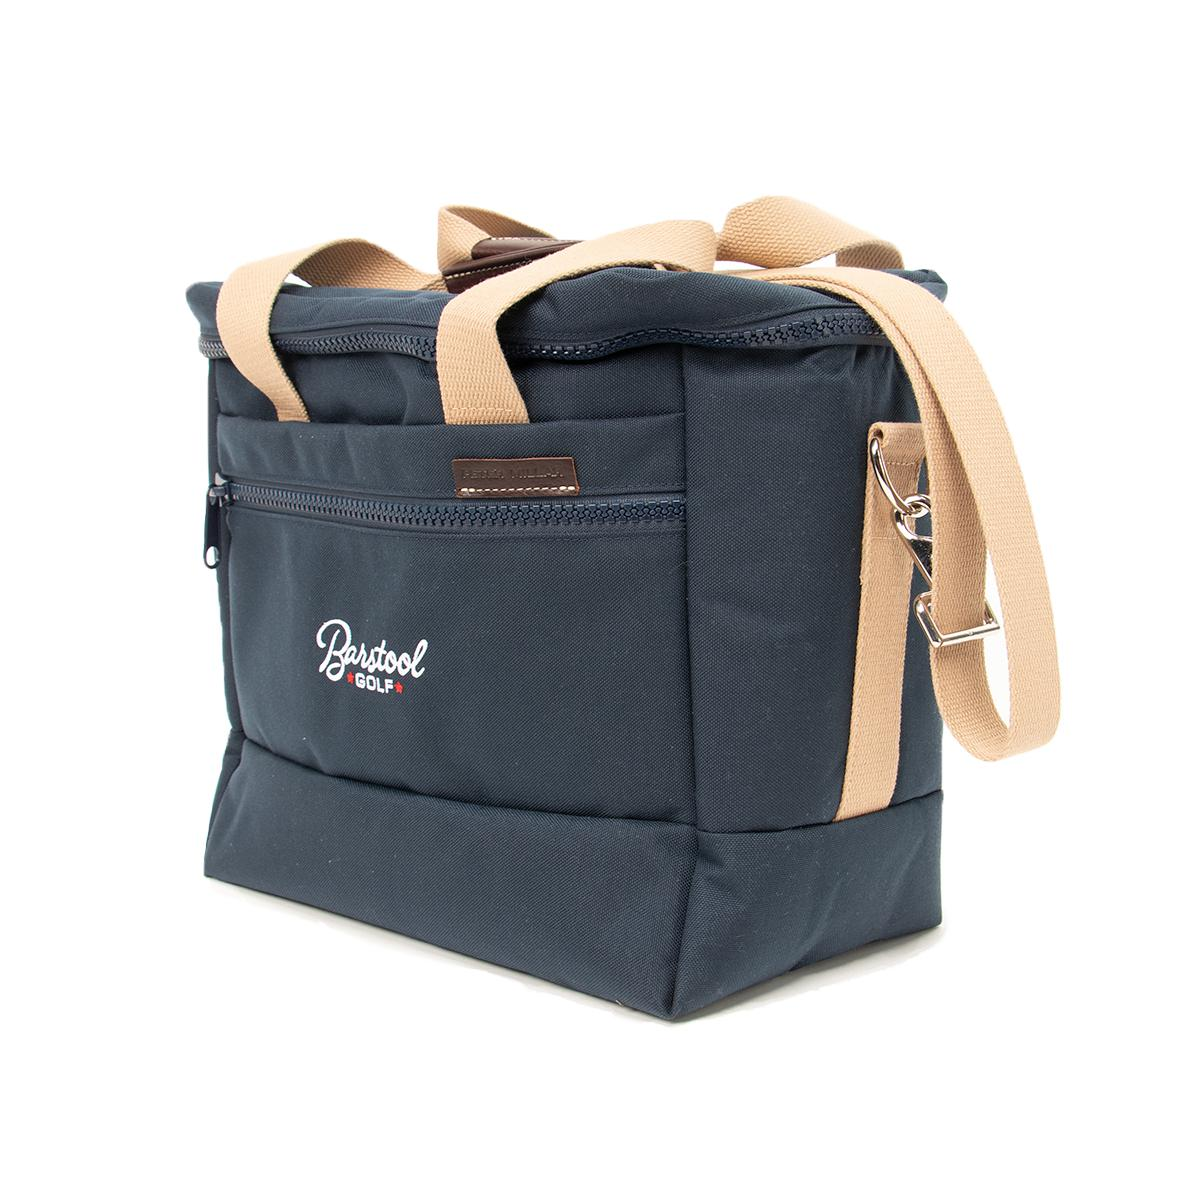 Peter Millar x Barstool Sports Cooler